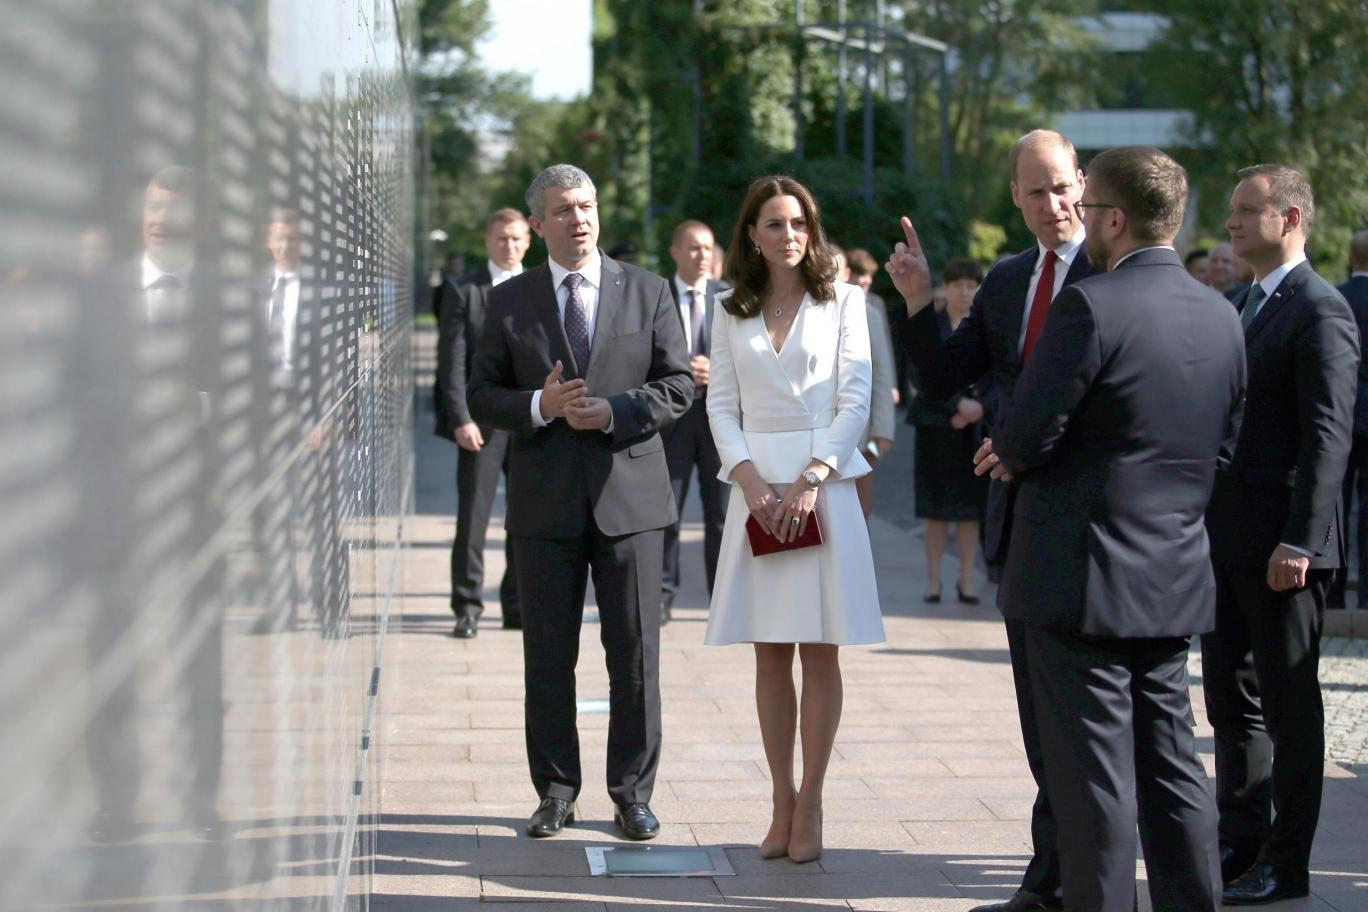 Prince William and Kate pay their respects at the Wall of Remembrance in Warsaw Getty Images